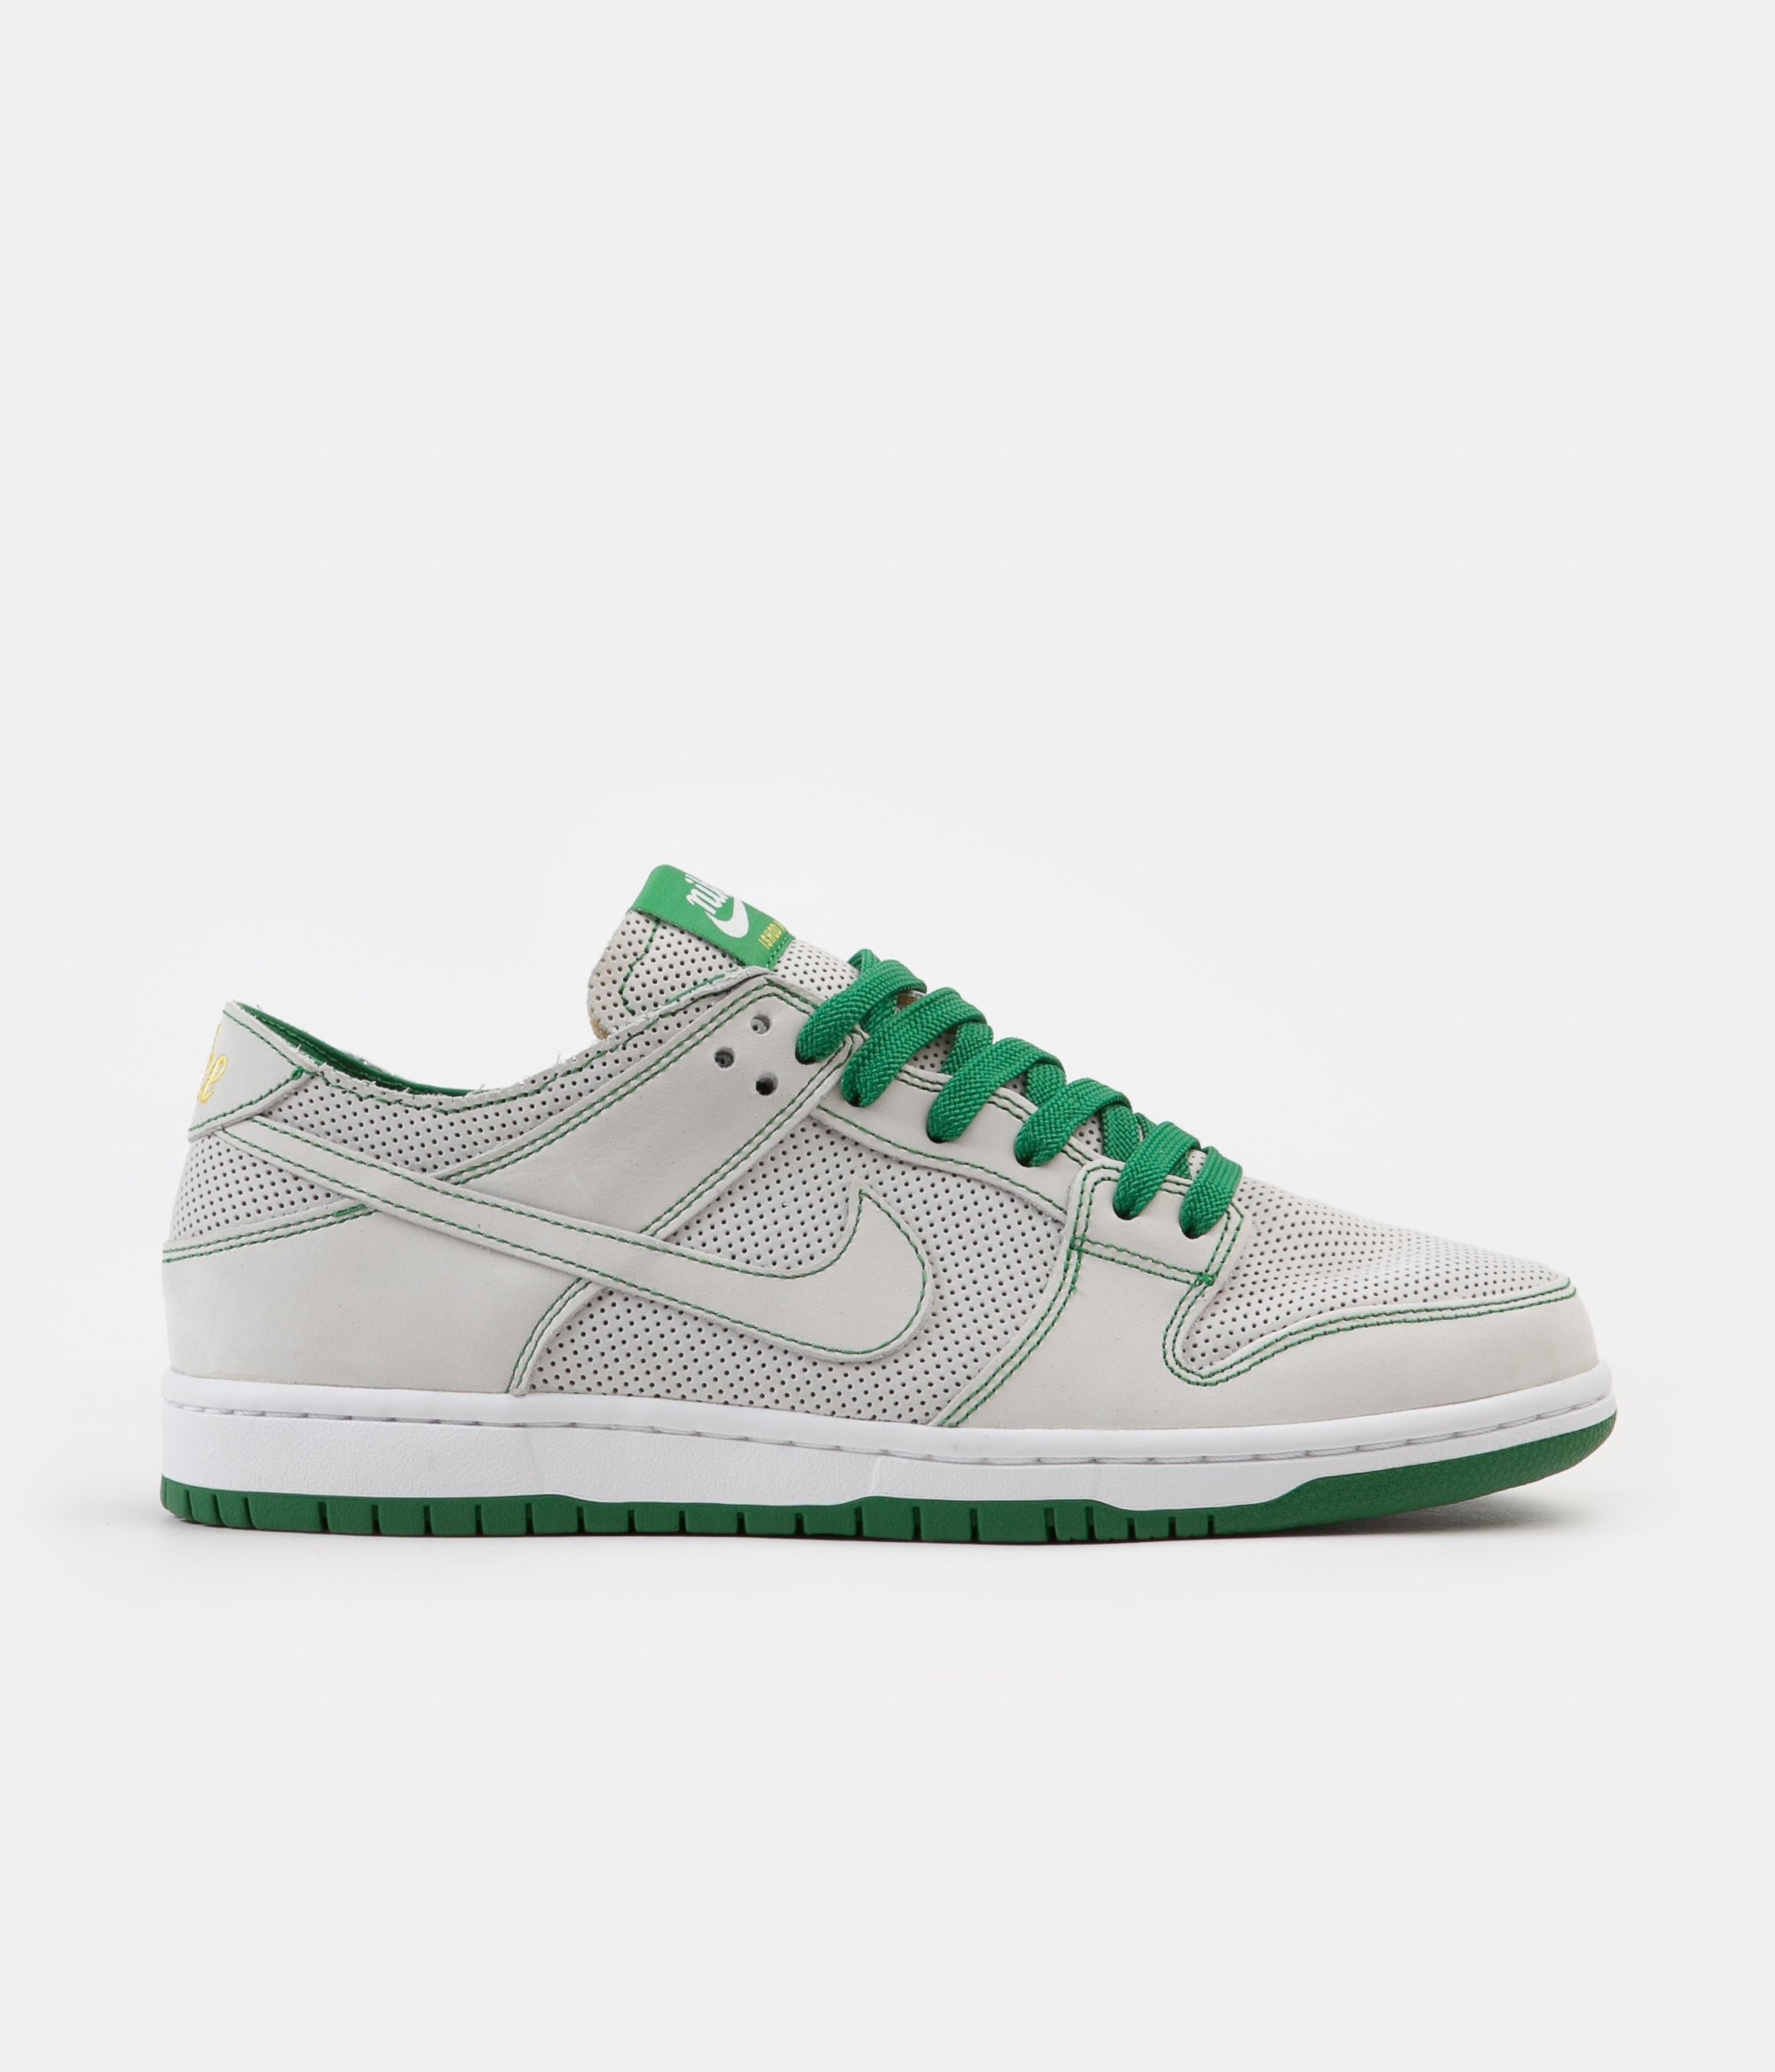 a39f94269fb Nike SB Dunk Low Pro Ishod Deconstructed Shoes - White   White - Aloe Verde  - Tour Yellow